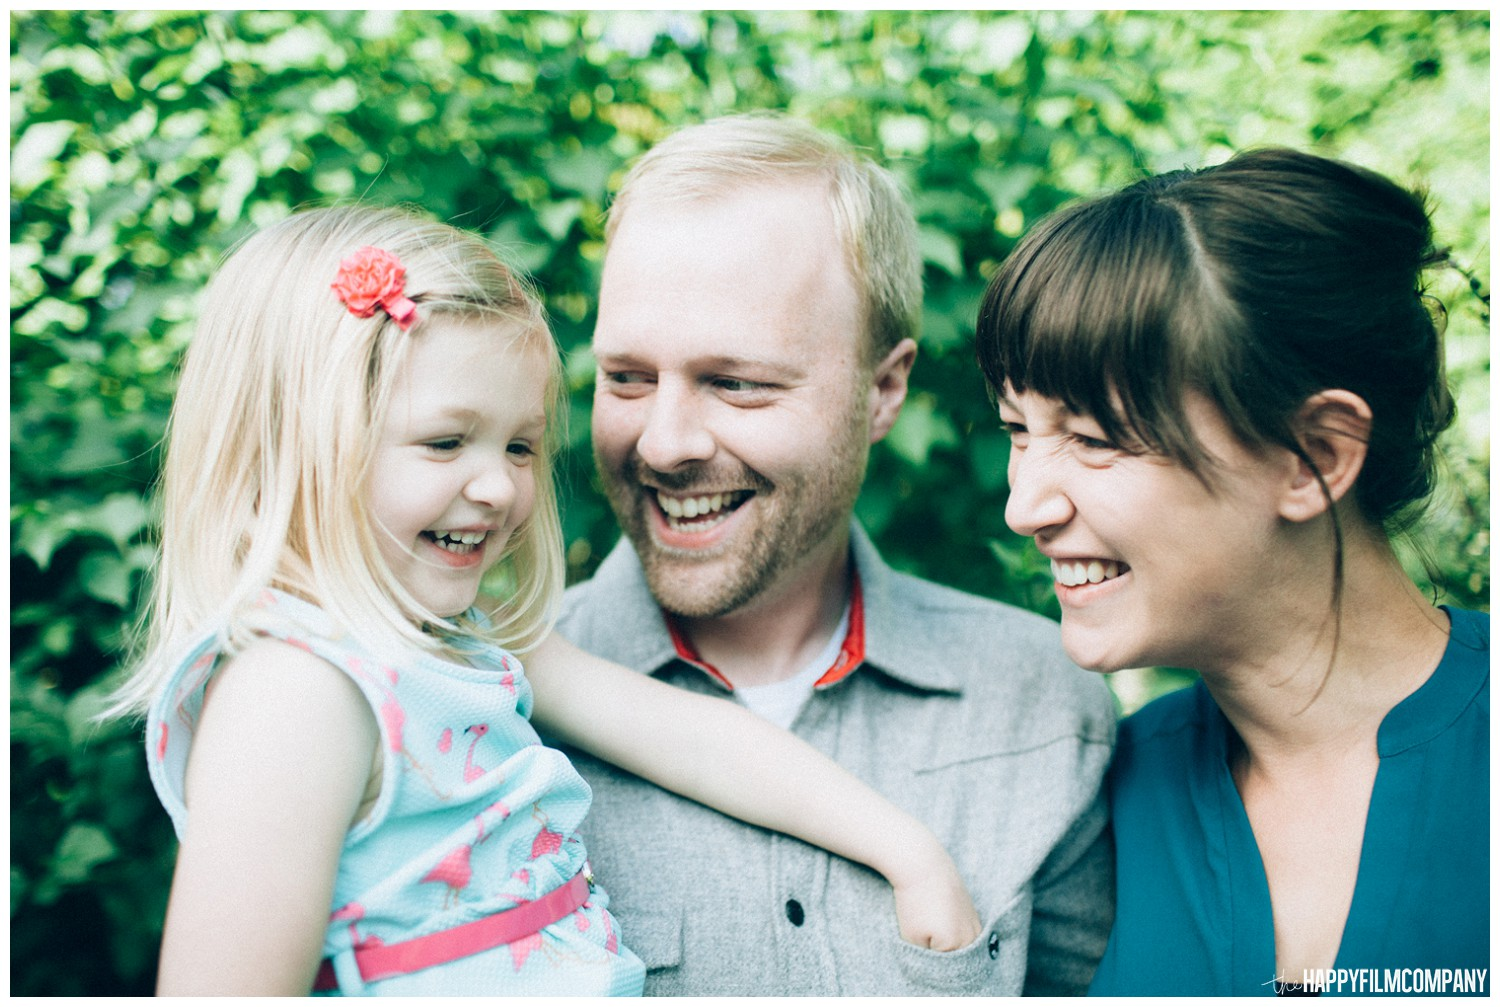 Mom and Dan with their daughter - the Happy Film Company - Seattle family photos